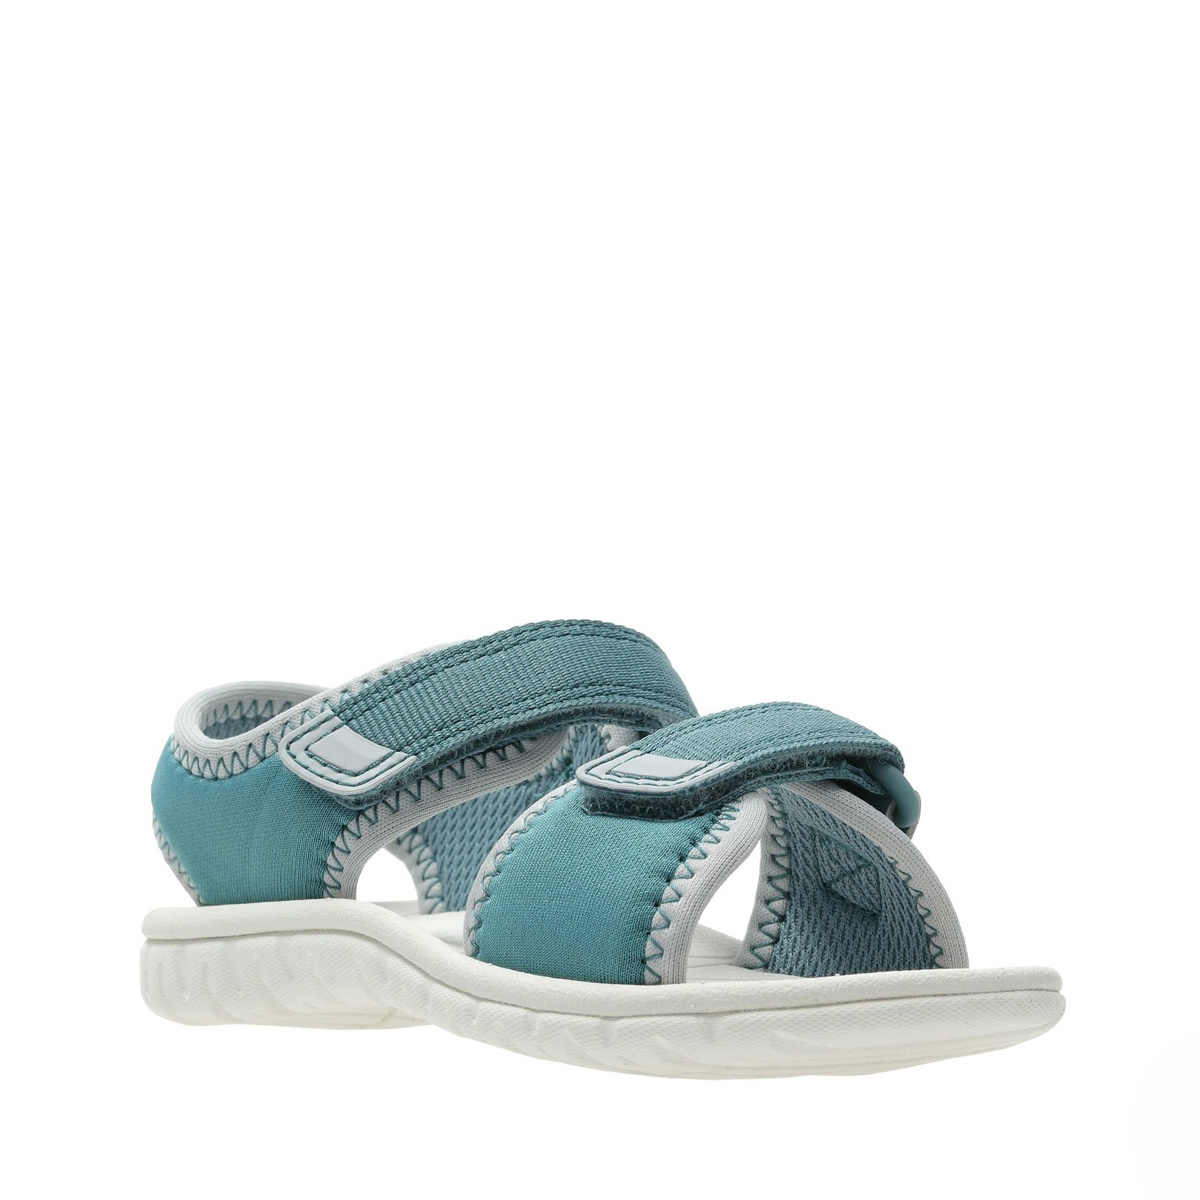 Clarks Surfing Tide Teal Synthetic Infant